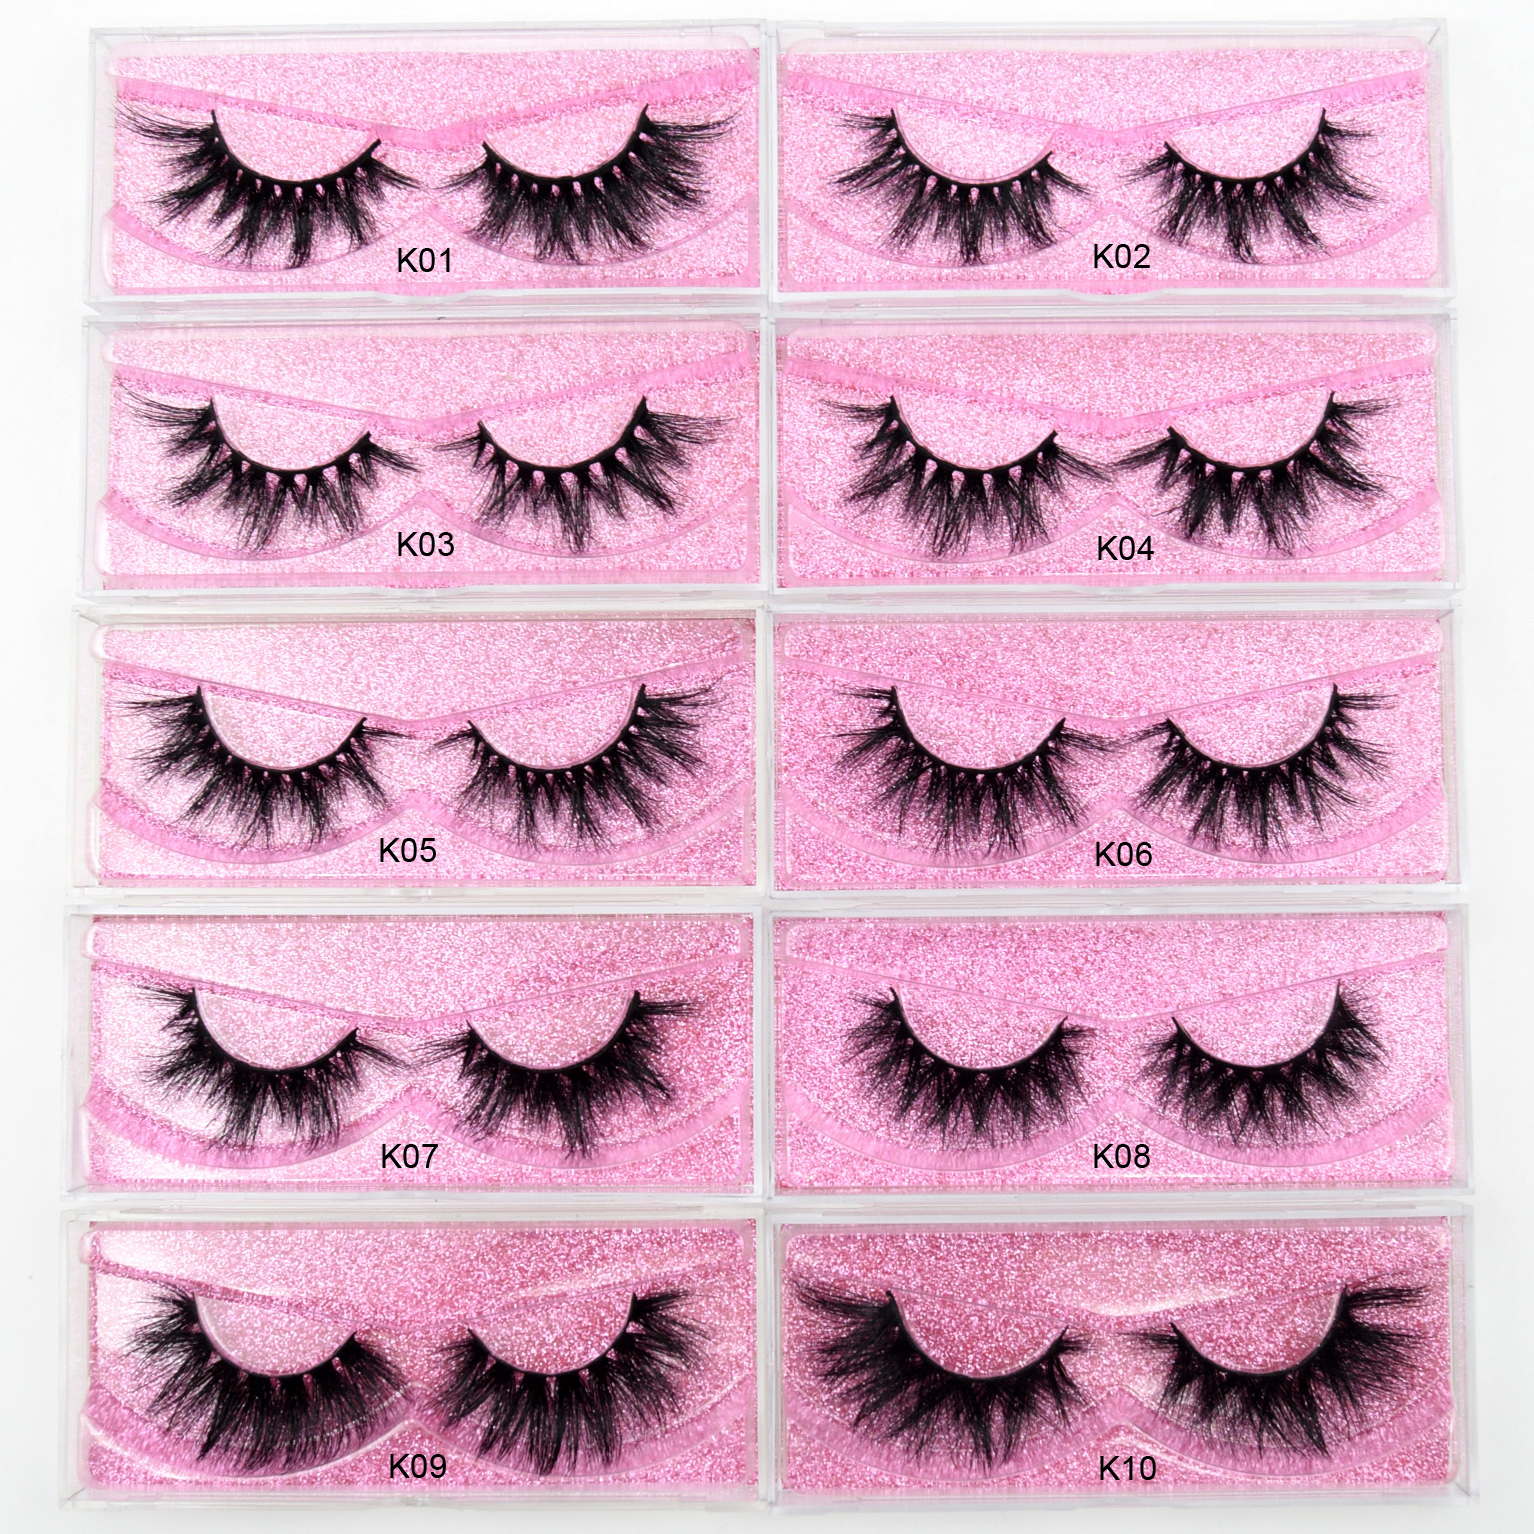 Visofree 5D Mink Eyelashes Handmade Full Strip Lashes Cruelty Free Mink Lashes Luxury Makeup Dramatic 3d Mink Lashes Cilios K01